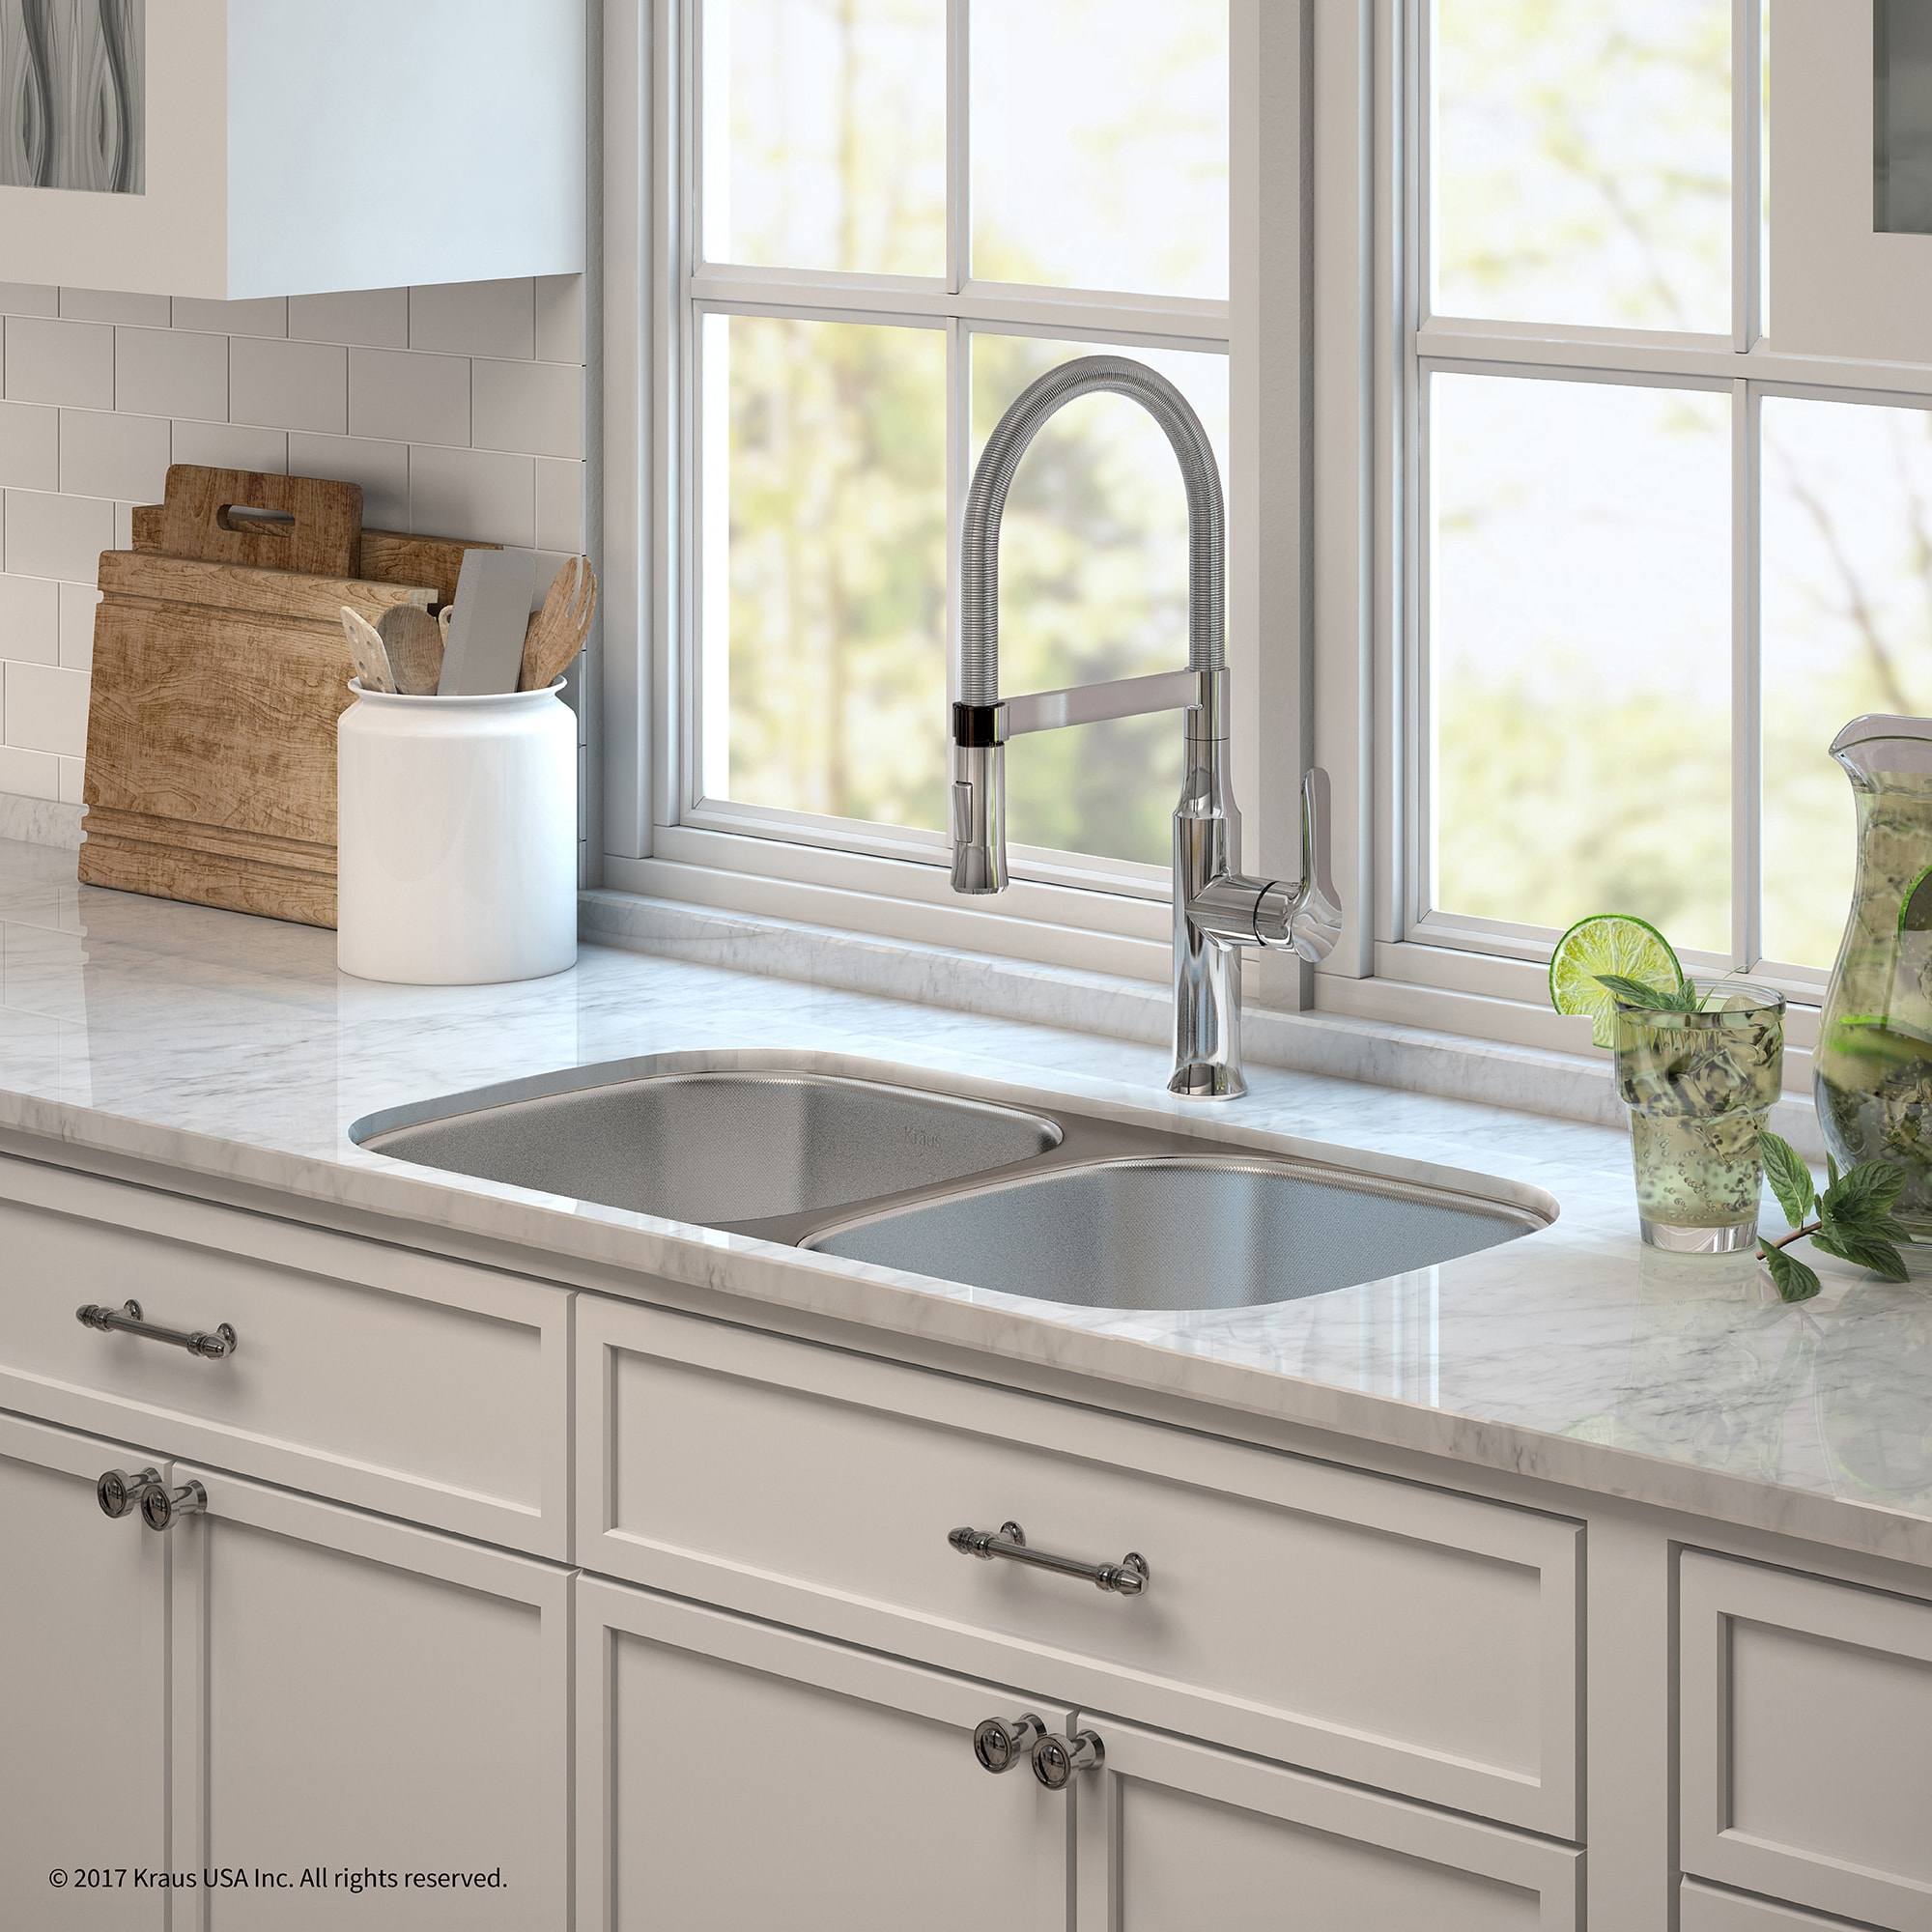 Kraus 32 Inch Undermount Double Bowl Stainless Steel Kitchen Sink Kpf 1640 Nola Commercial Pull Down Faucet Dispenser Free Shipping Today